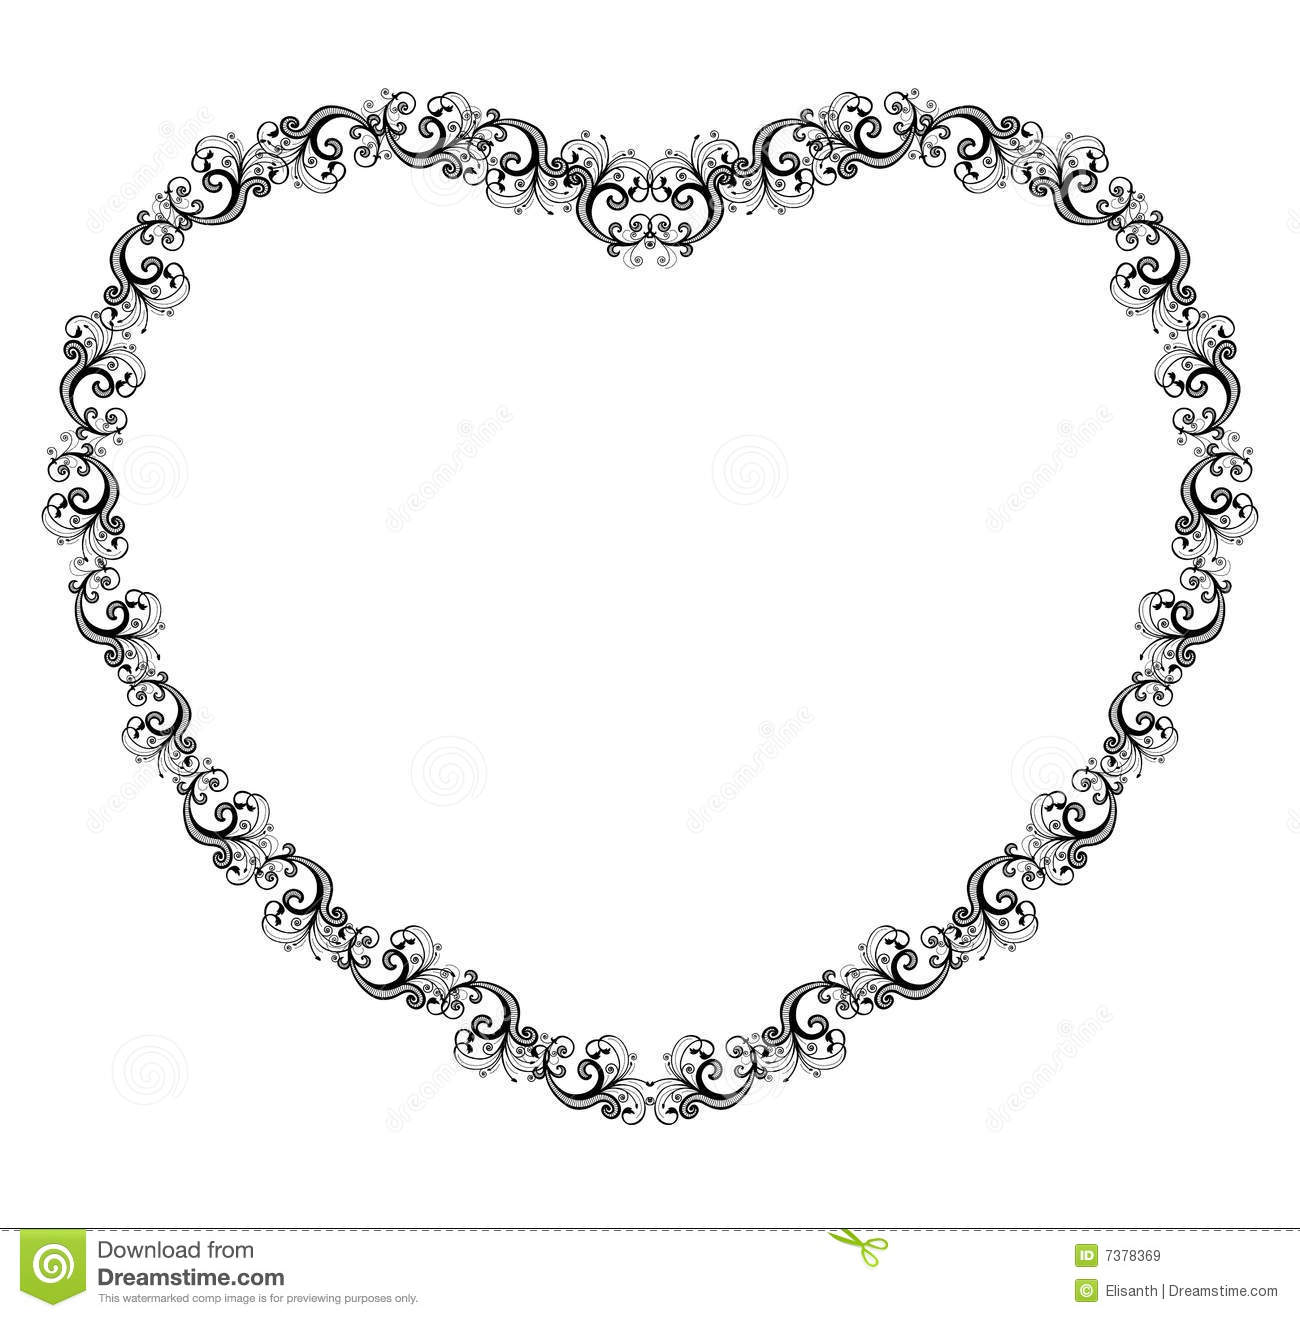 Vector Illustration Of A Heart Border Stock Vector